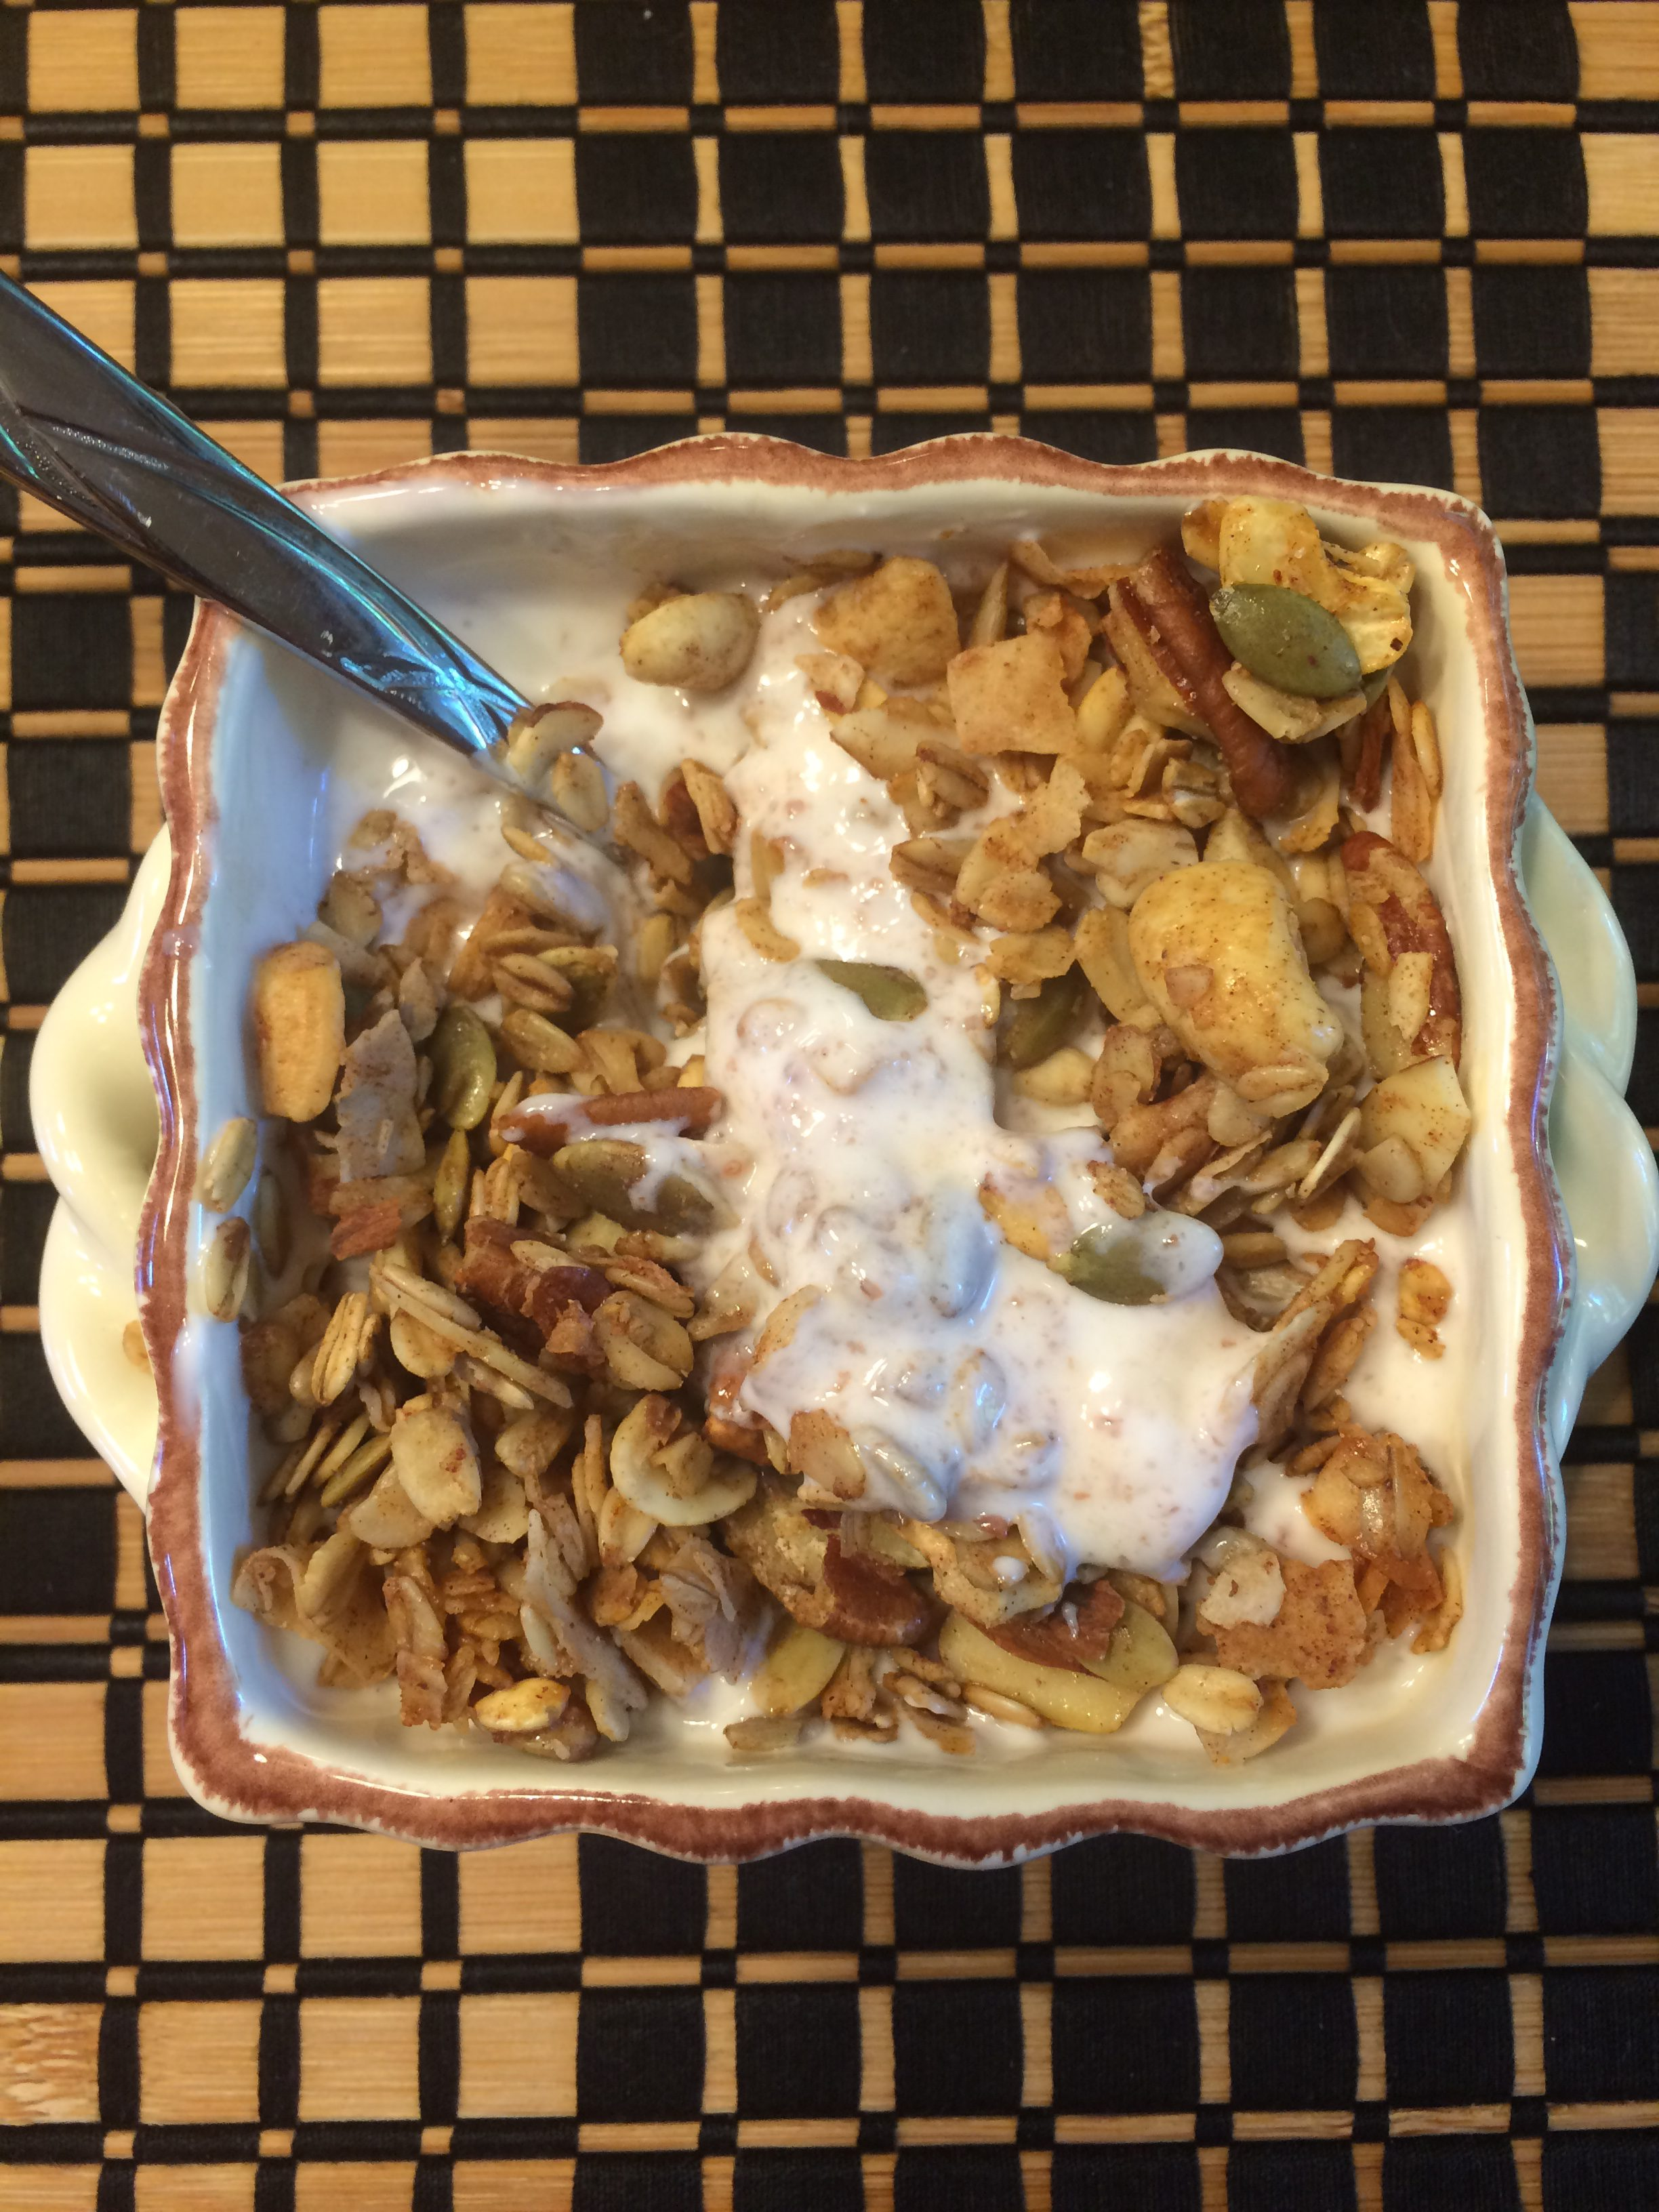 Homemade granola 100 days of real food healthier holland part of that includes cooking more which i absolutely love i often mention one of our favorite granola recipes on the blog forumfinder Images